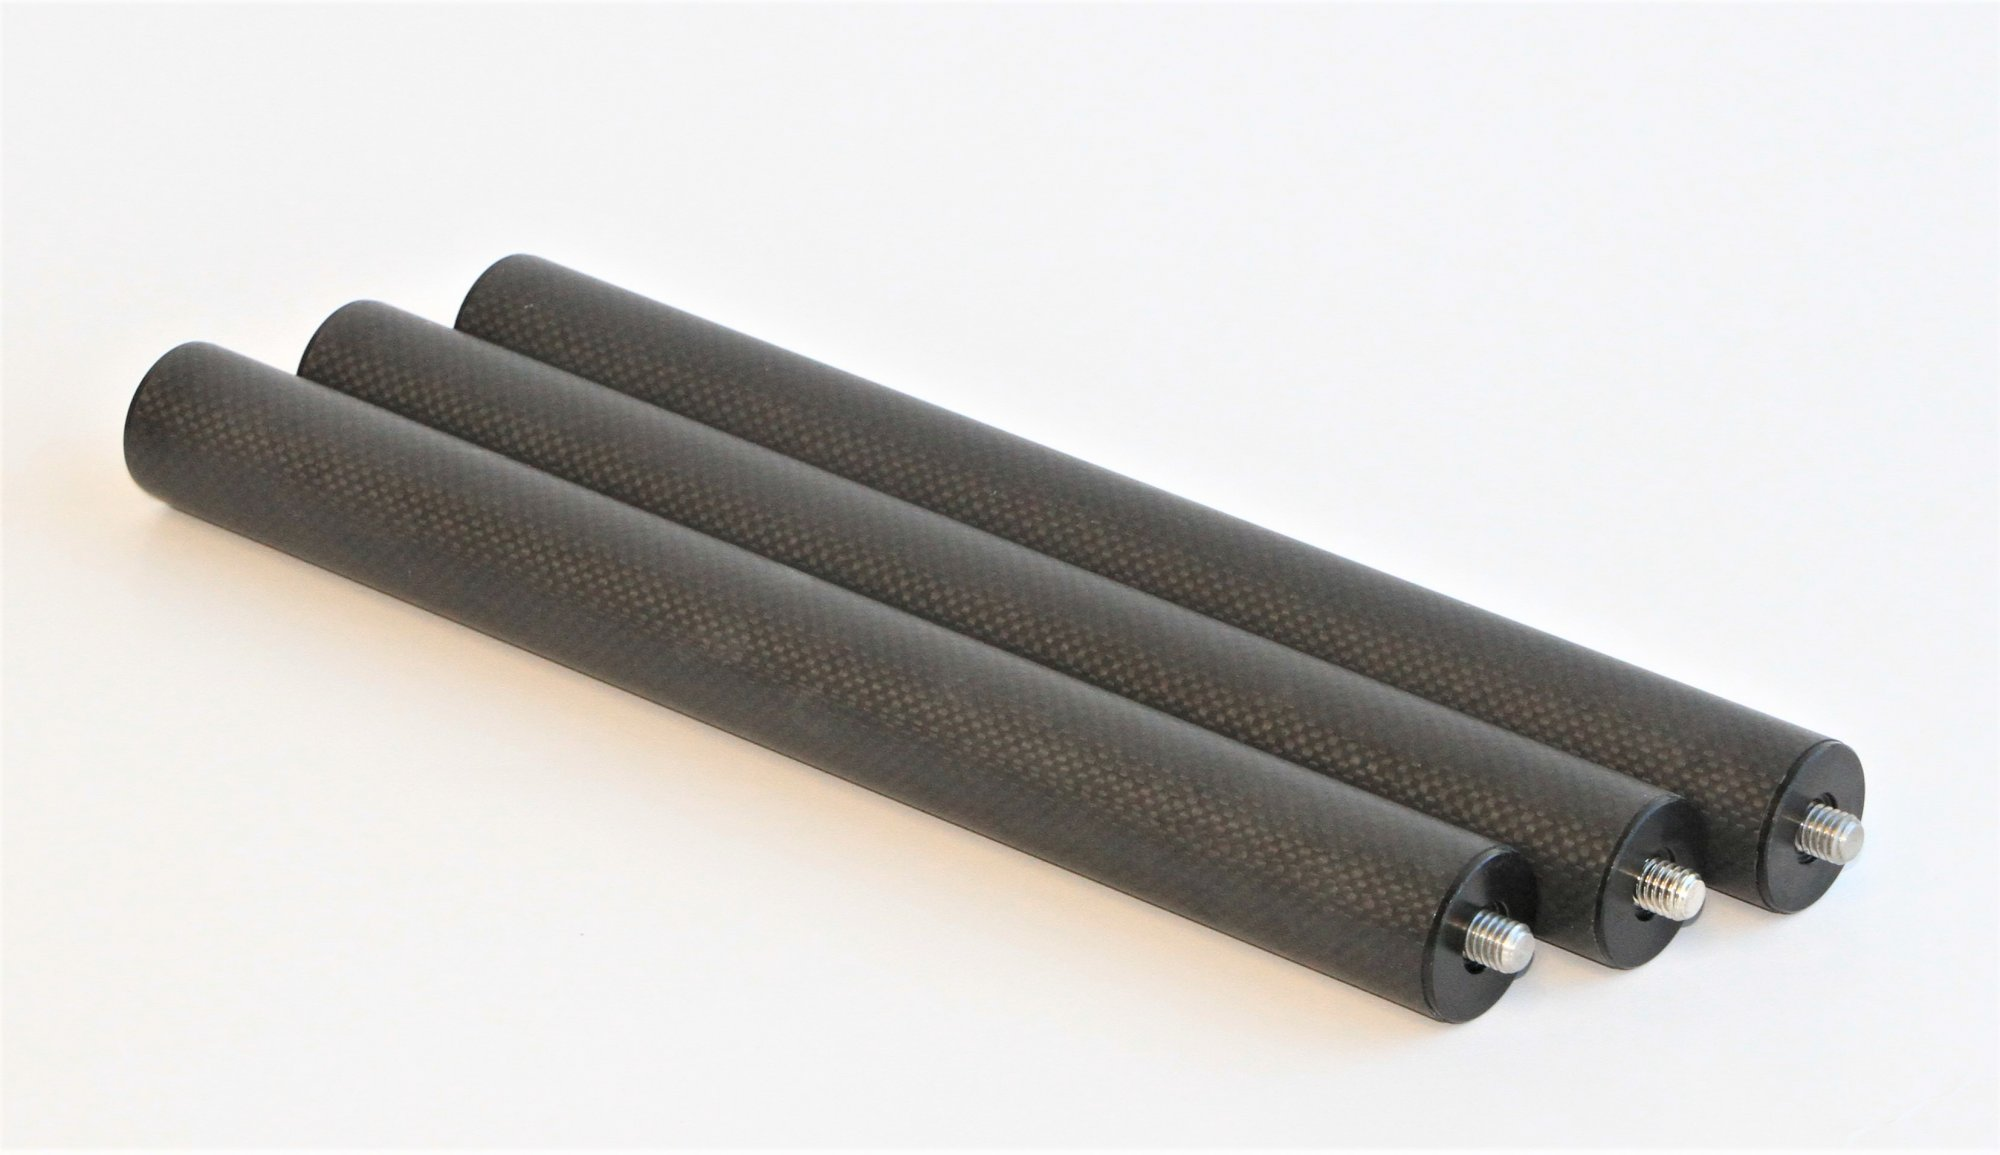 12 Leg Extension, 3 Pack, 32mm Carbon Fiber